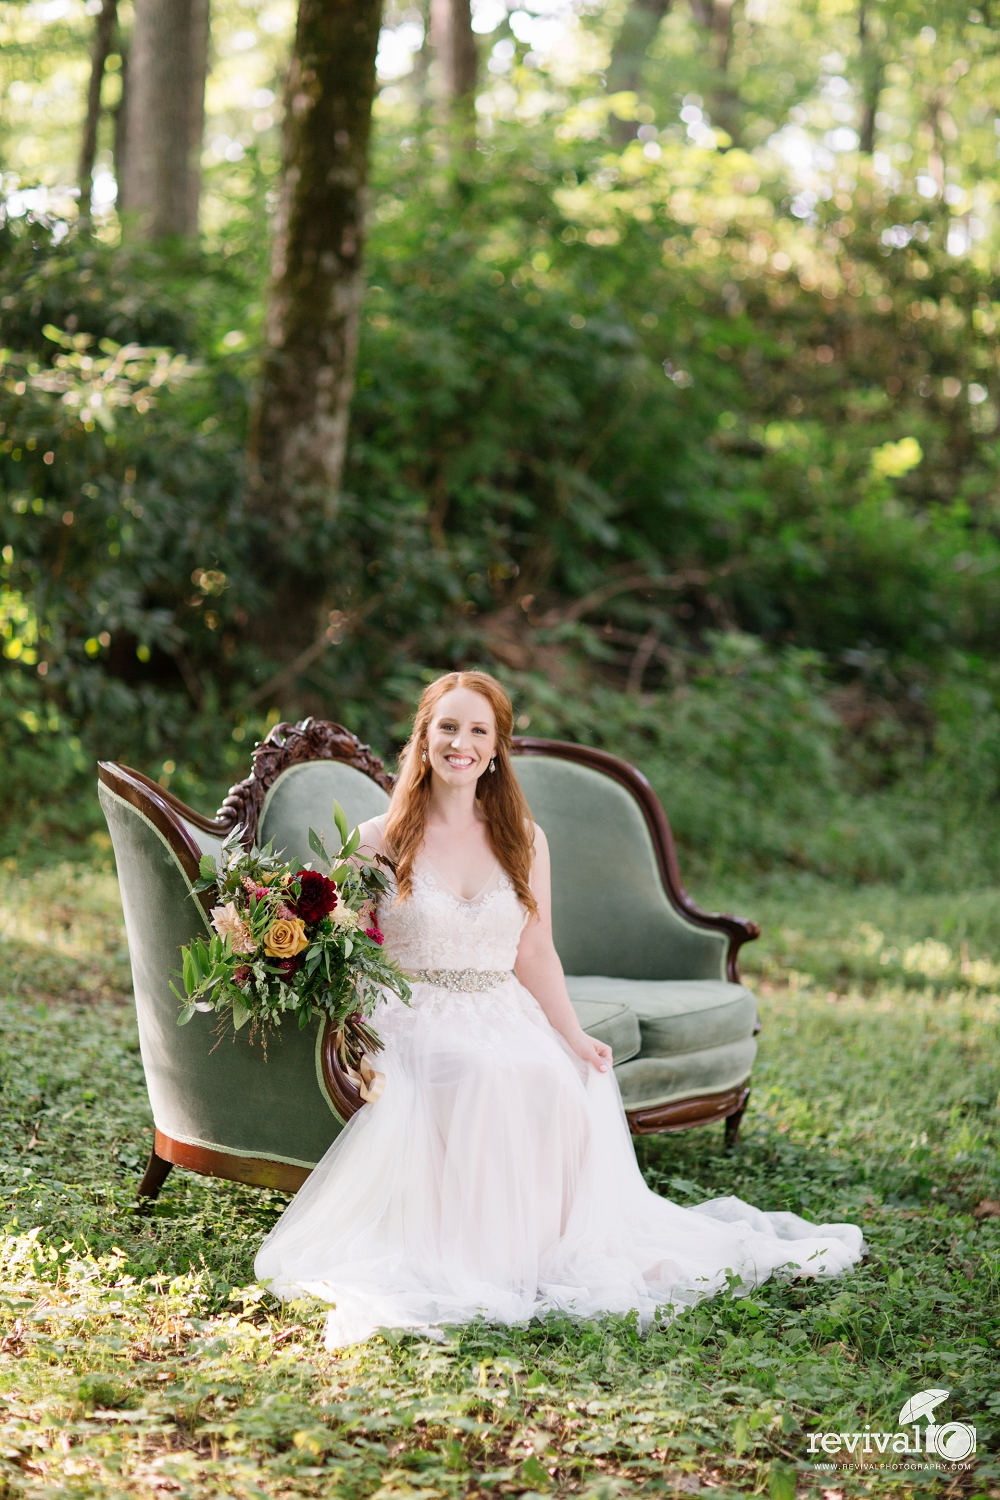 Bridal Session with Brittany at Westglow Spa in the Blue Ridge Mountains Photos by Revival Photography NC Husband and Wife Photographers www.revivalphotography.com